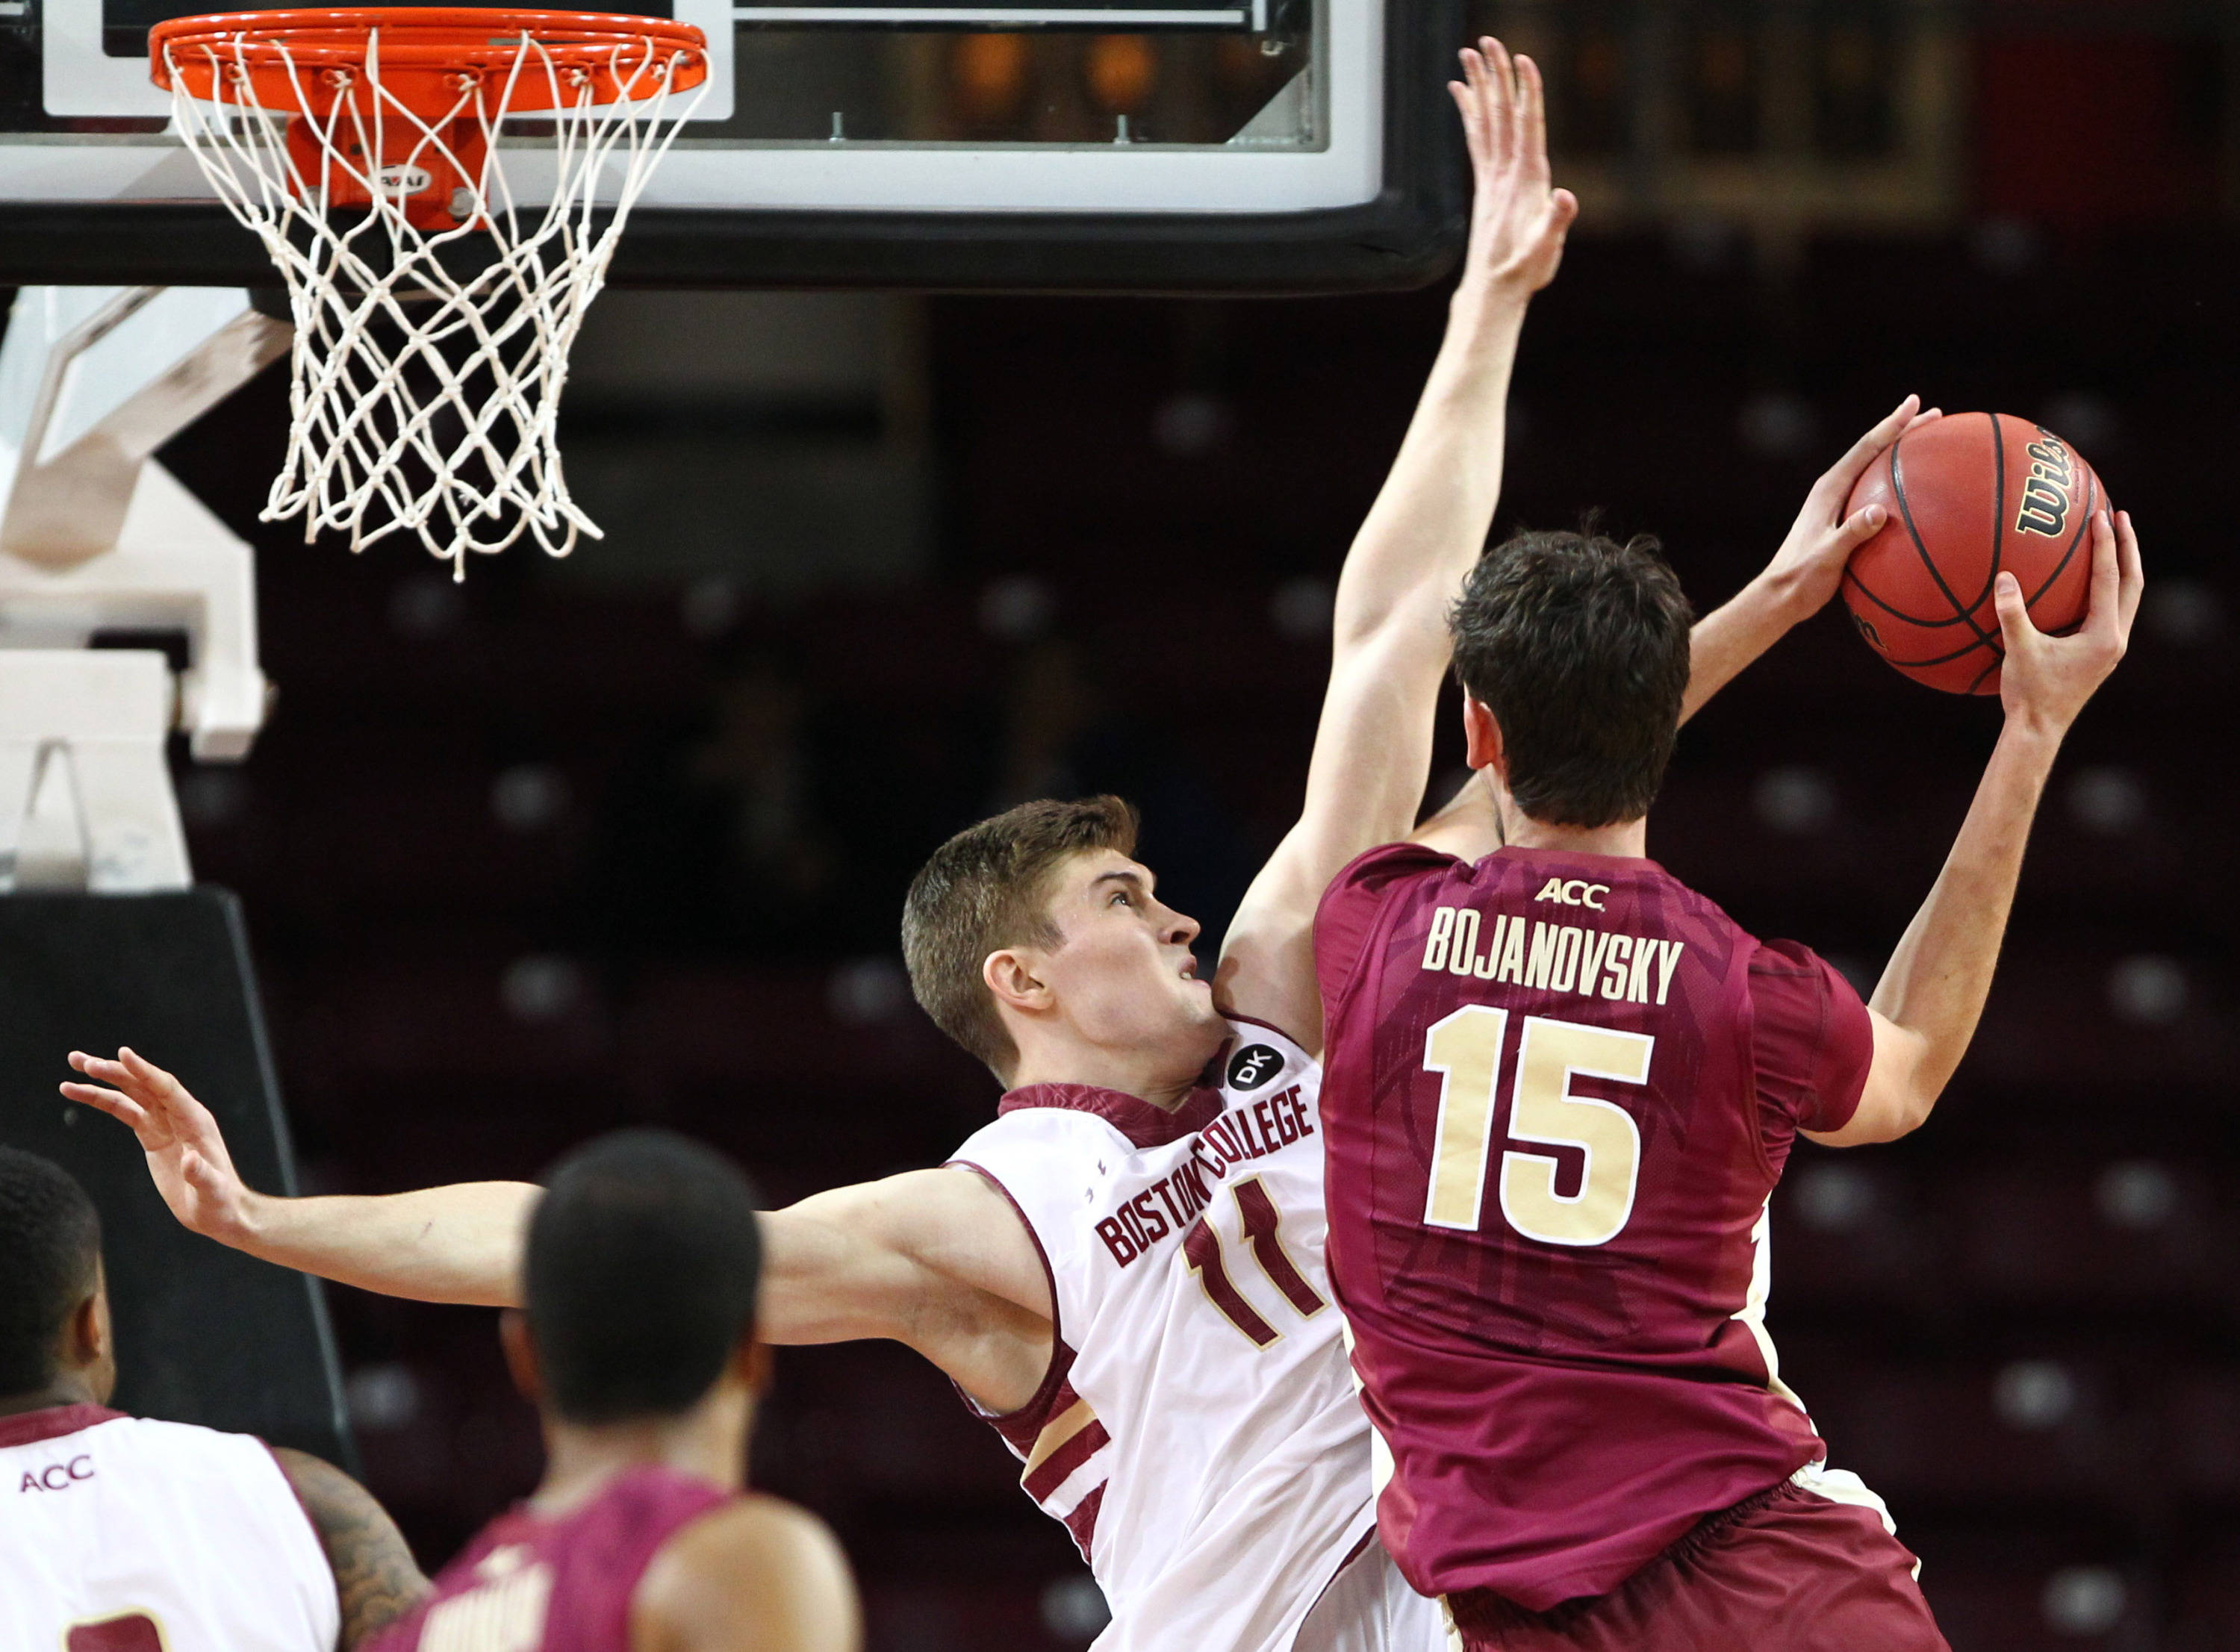 Mar 4, 2014; Chestnut Hill, MA, USA; Seminoles center Boris Bojanovsky (15) shoots the ball against Boston College Eagles forward Will Magarity (11) during the second half. Mark L. Baer-USA TODAY Sports